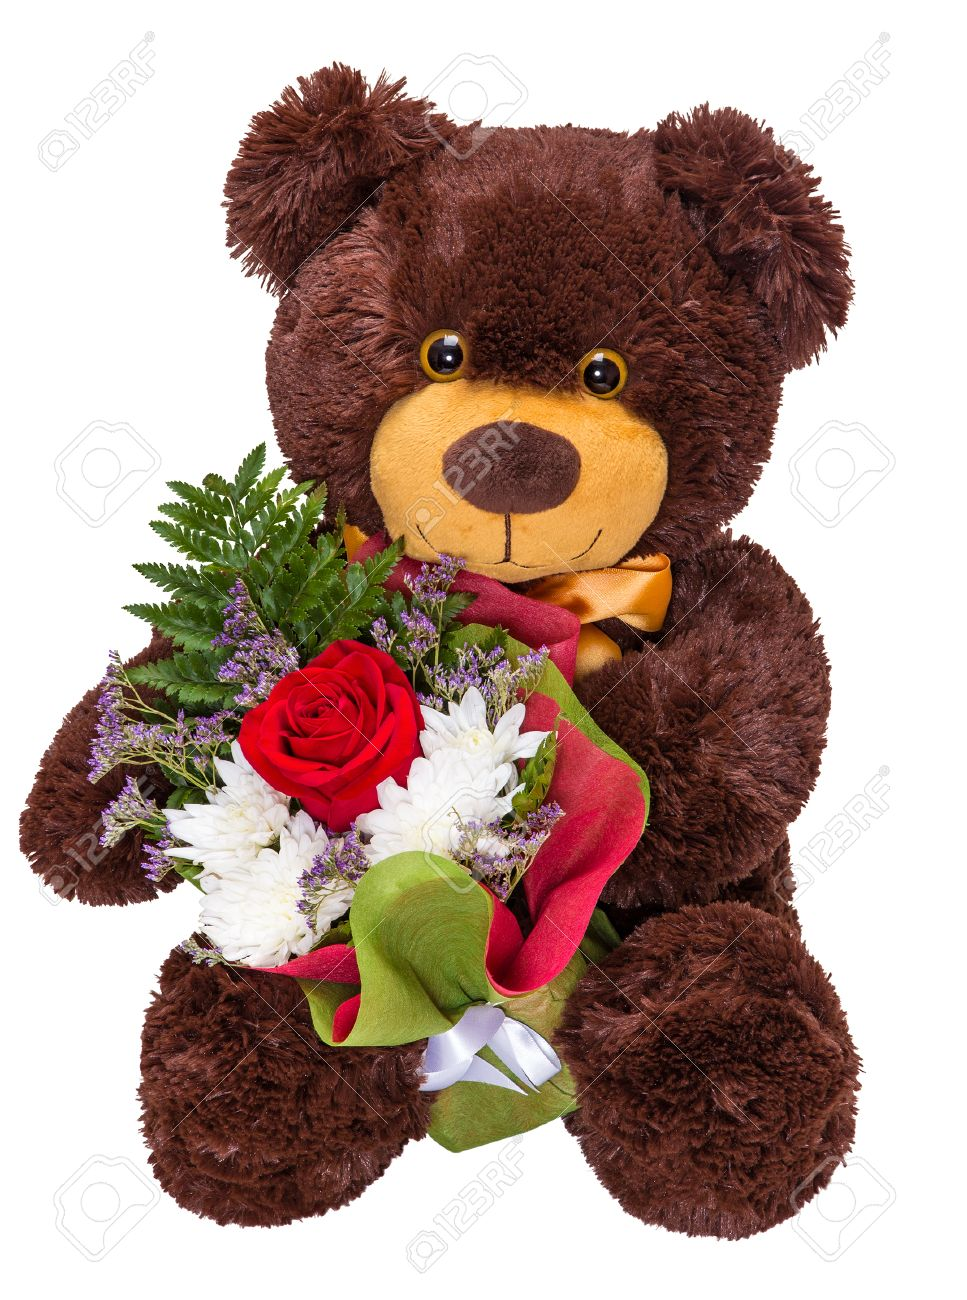 Charming Smiling Teddy Bear Holding A Bouquet Of Fresh Flowers ...